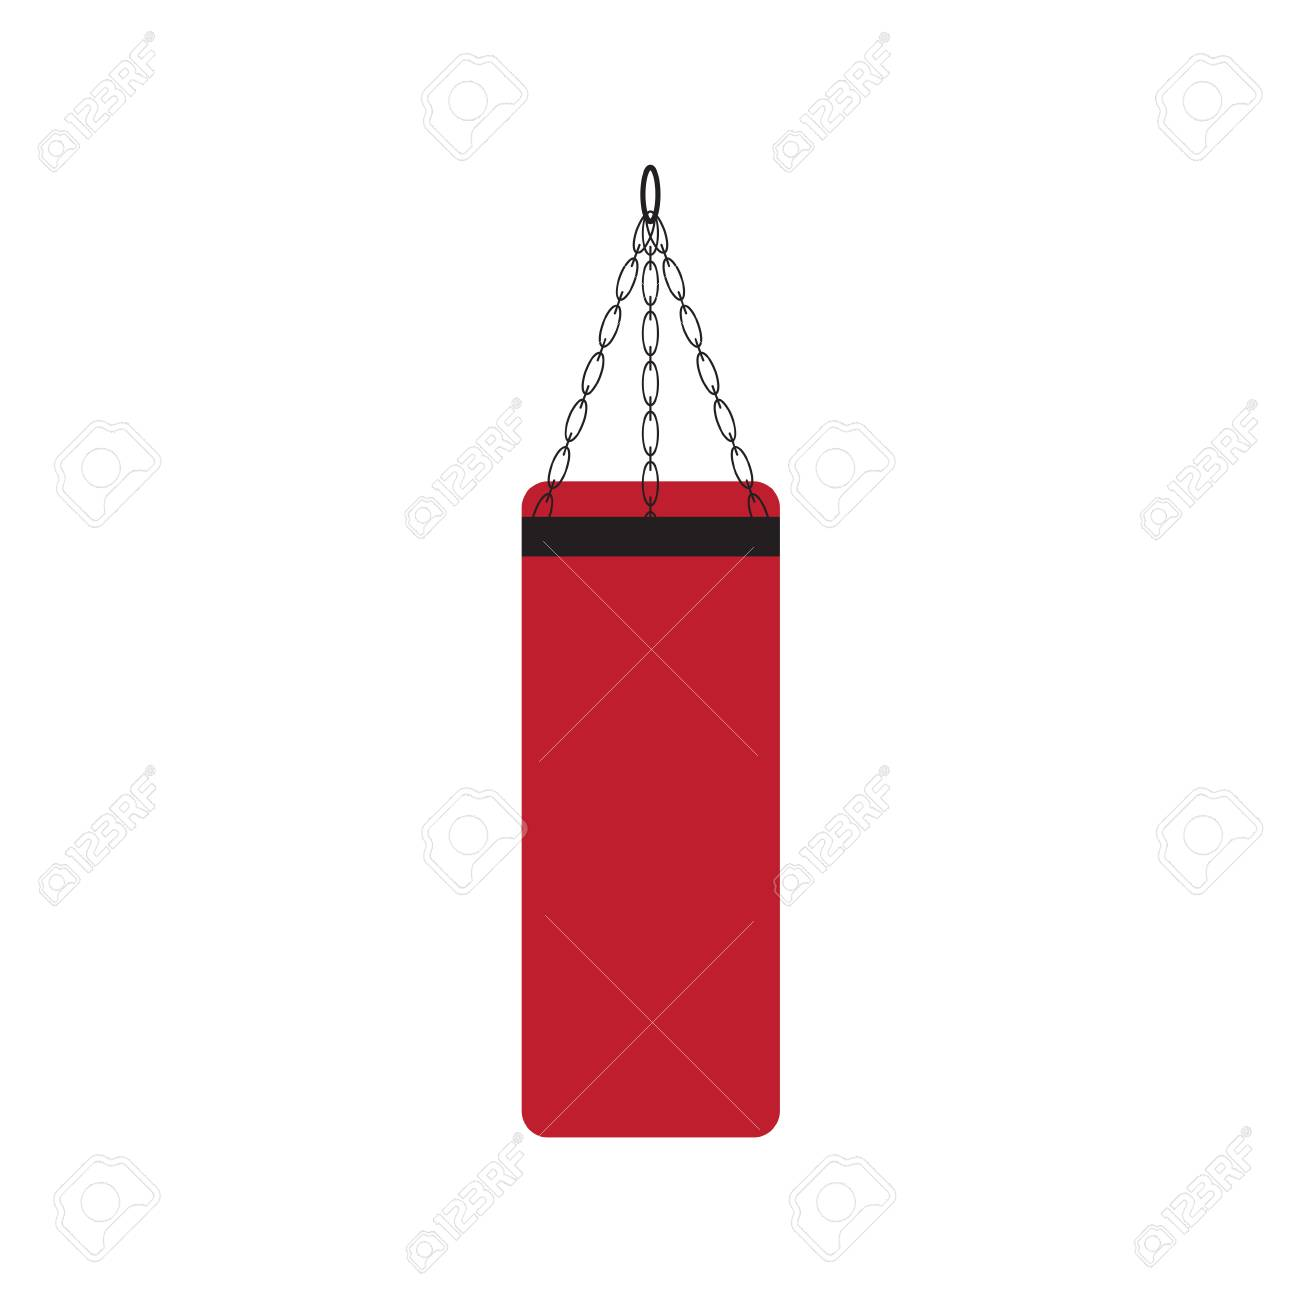 boxing punching bag icon.